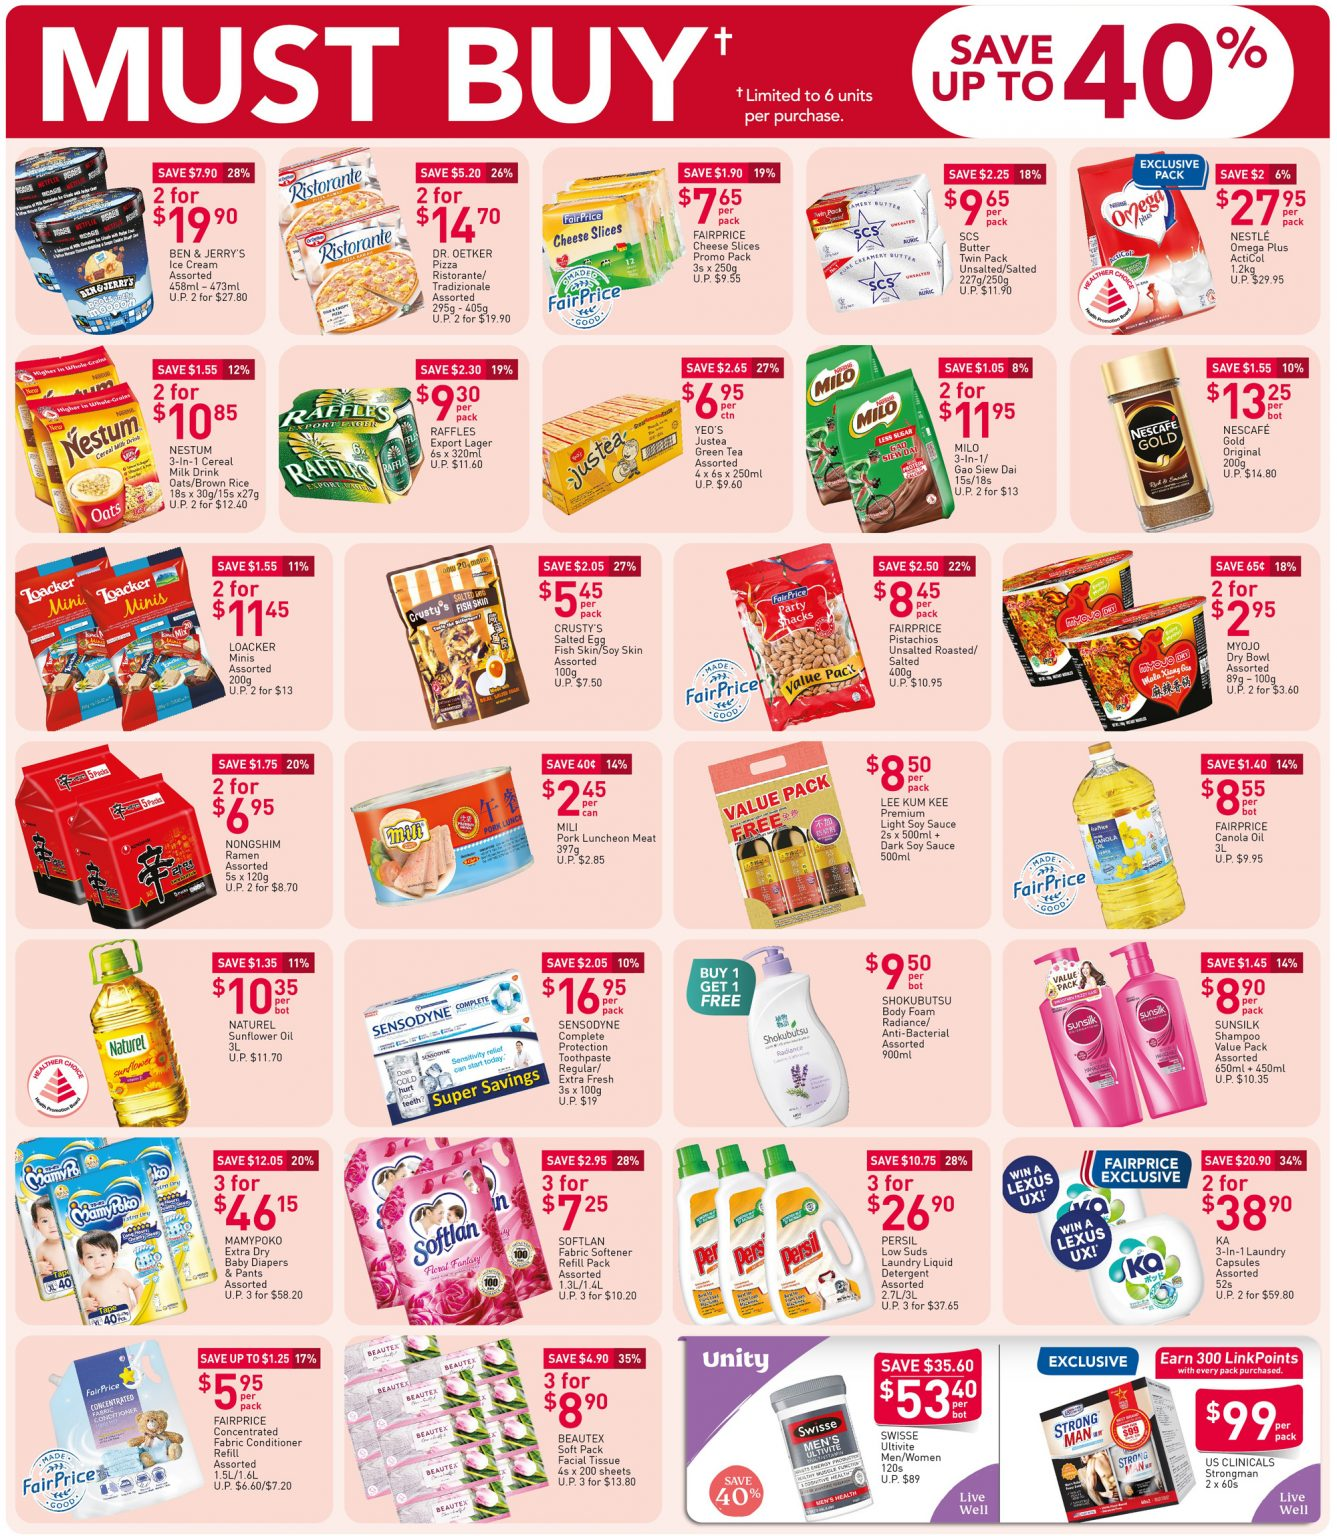 FairPrice must-buy items from now till 21 October 2020